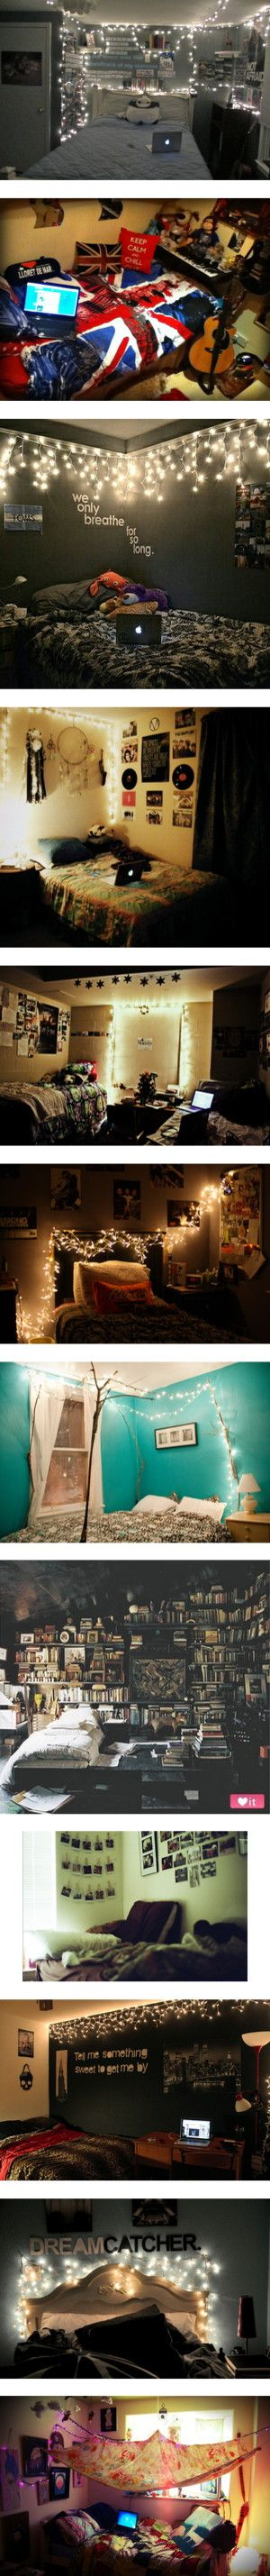 Indie hipster bedroom inspiration by for the love of for Bedroom ideas indie